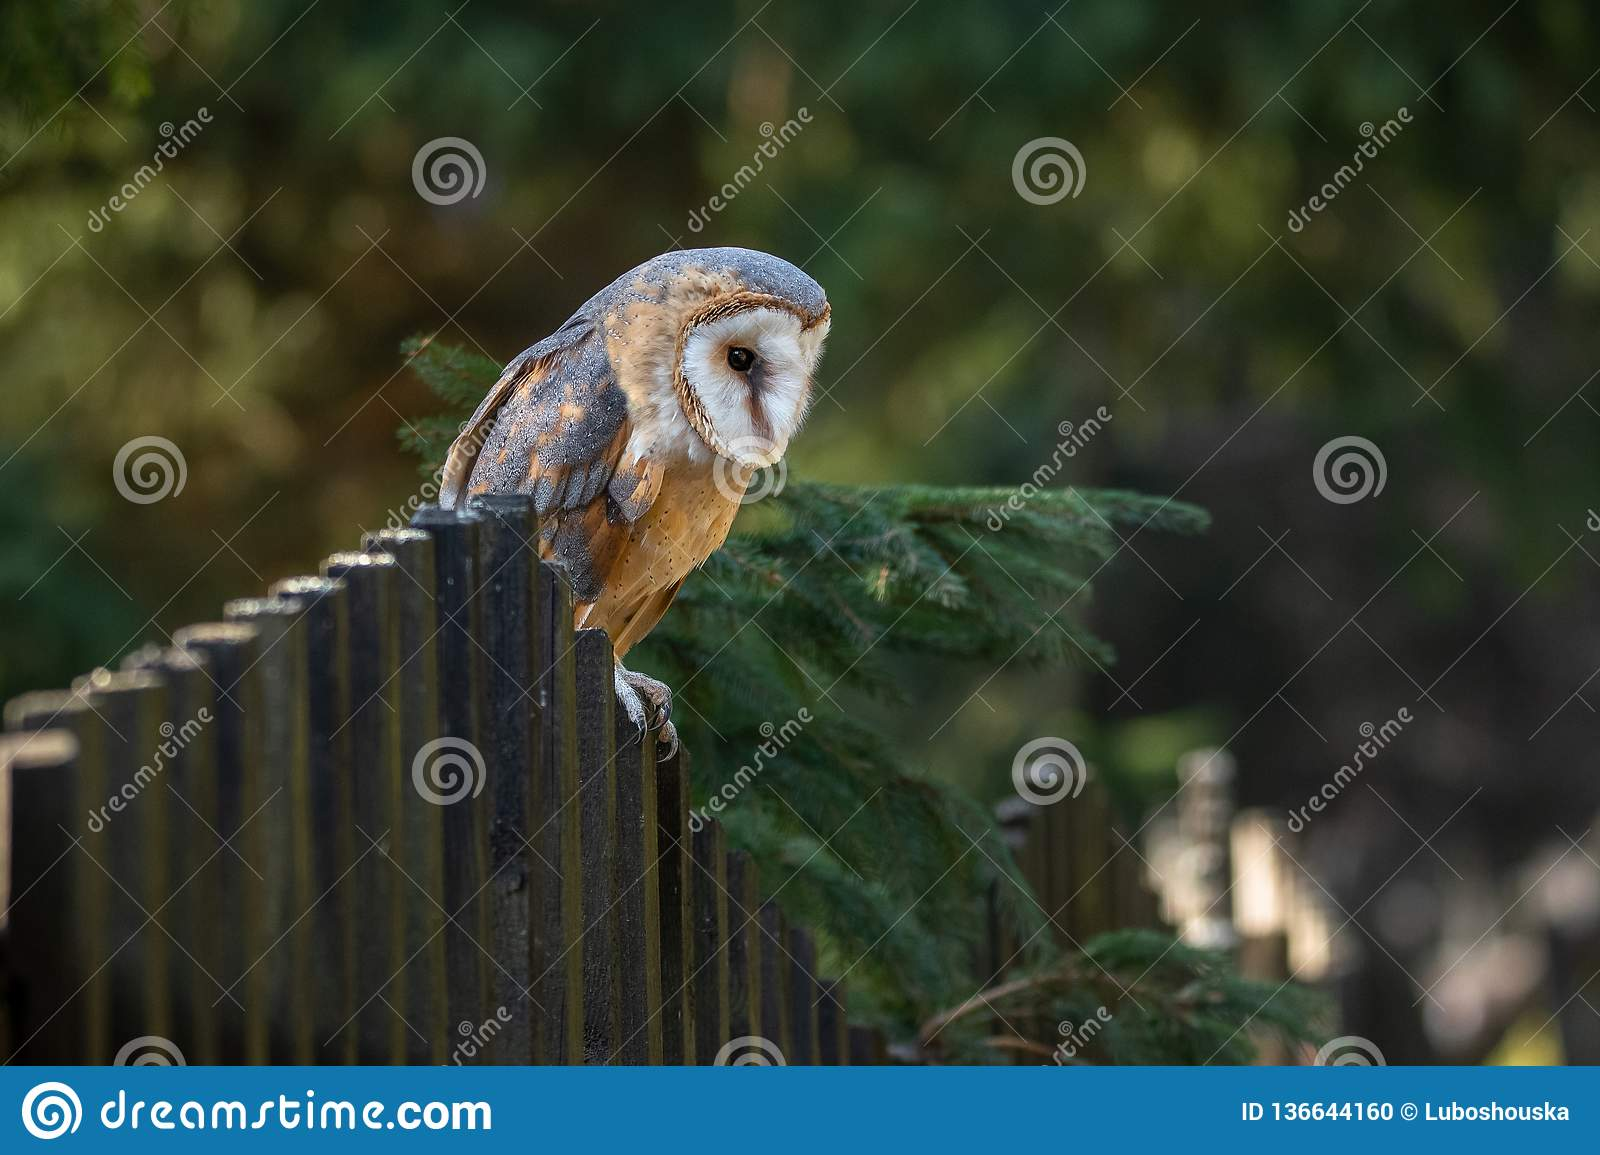 The barn owl is the most widely distributed species of owl and one of the most widespread of all birds.